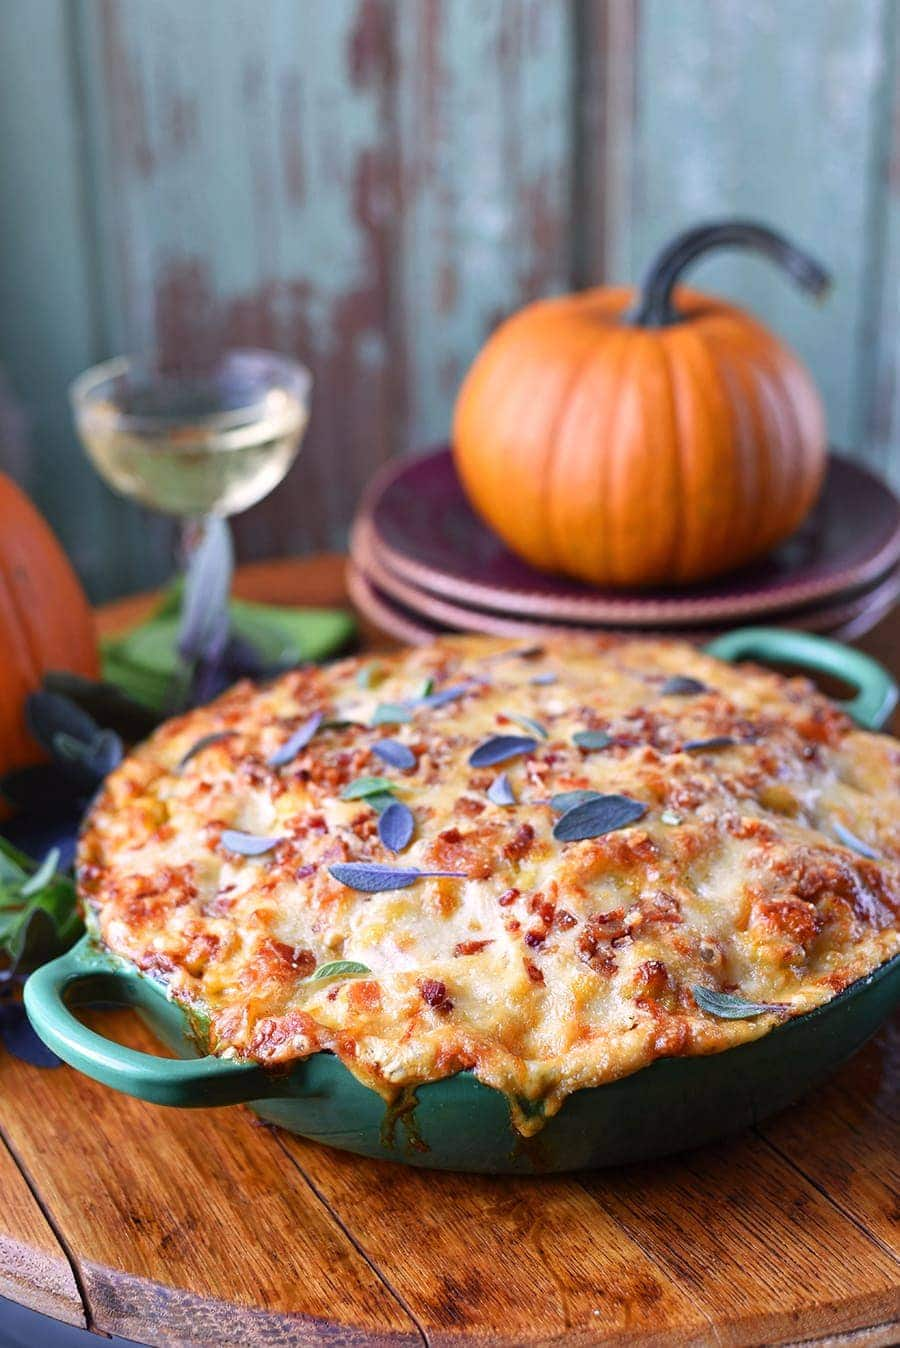 #Pumpkin #macandcheese is just want the fall season requires! We've included instructions for a weeknight #casserole and additions to make a #holiday worthy side dish.